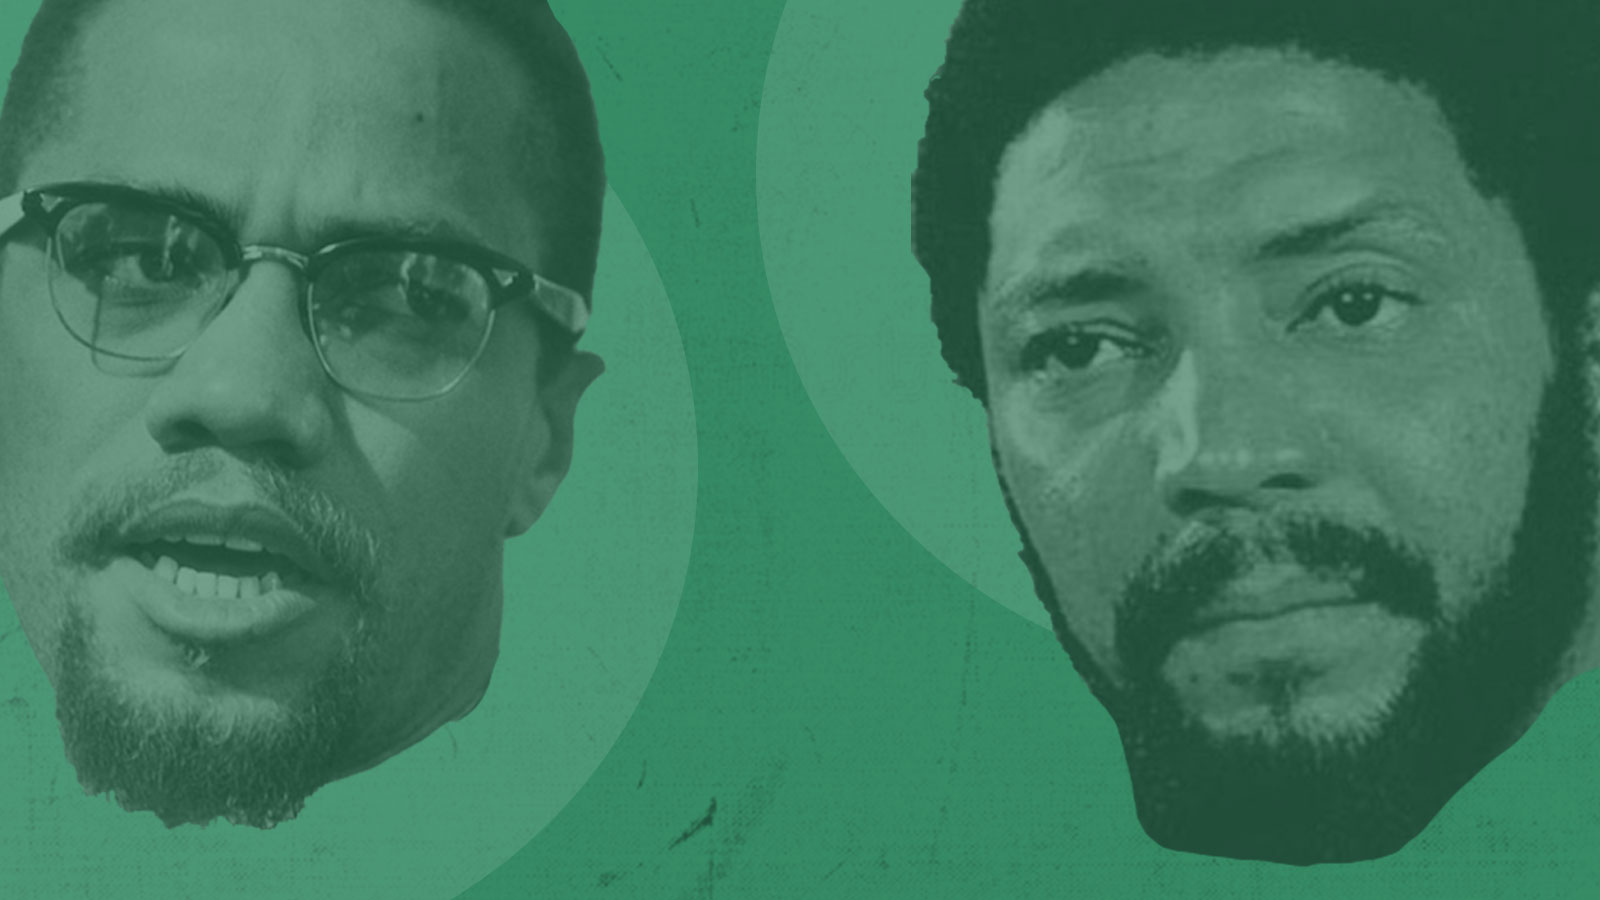 Grenada National Reparations Commission Lecture: Malcolm, Maurice and the Movement for Reparations in Grenada